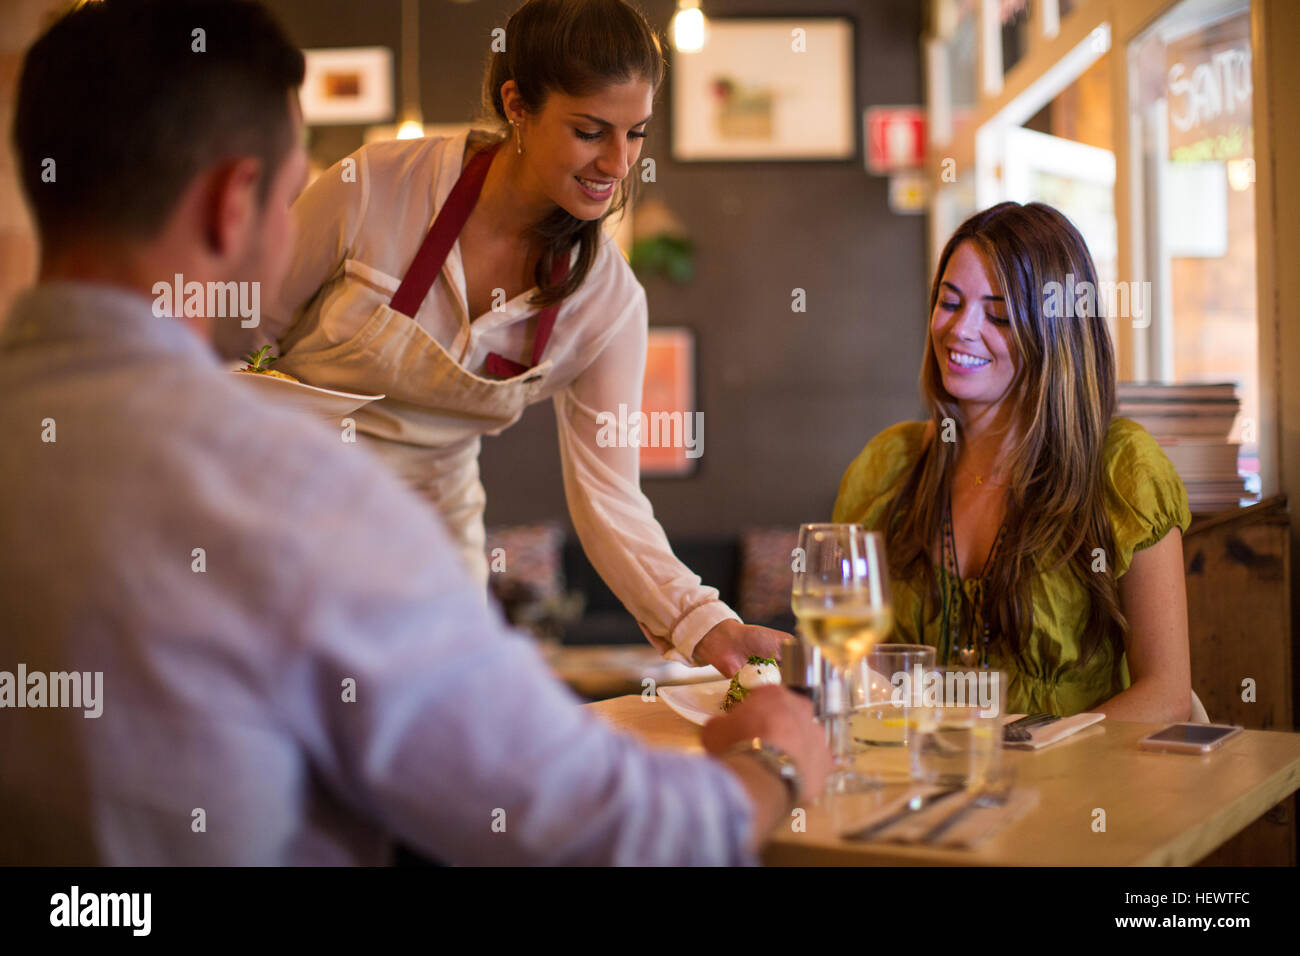 Waitress serving customers in restaurant - Stock Image